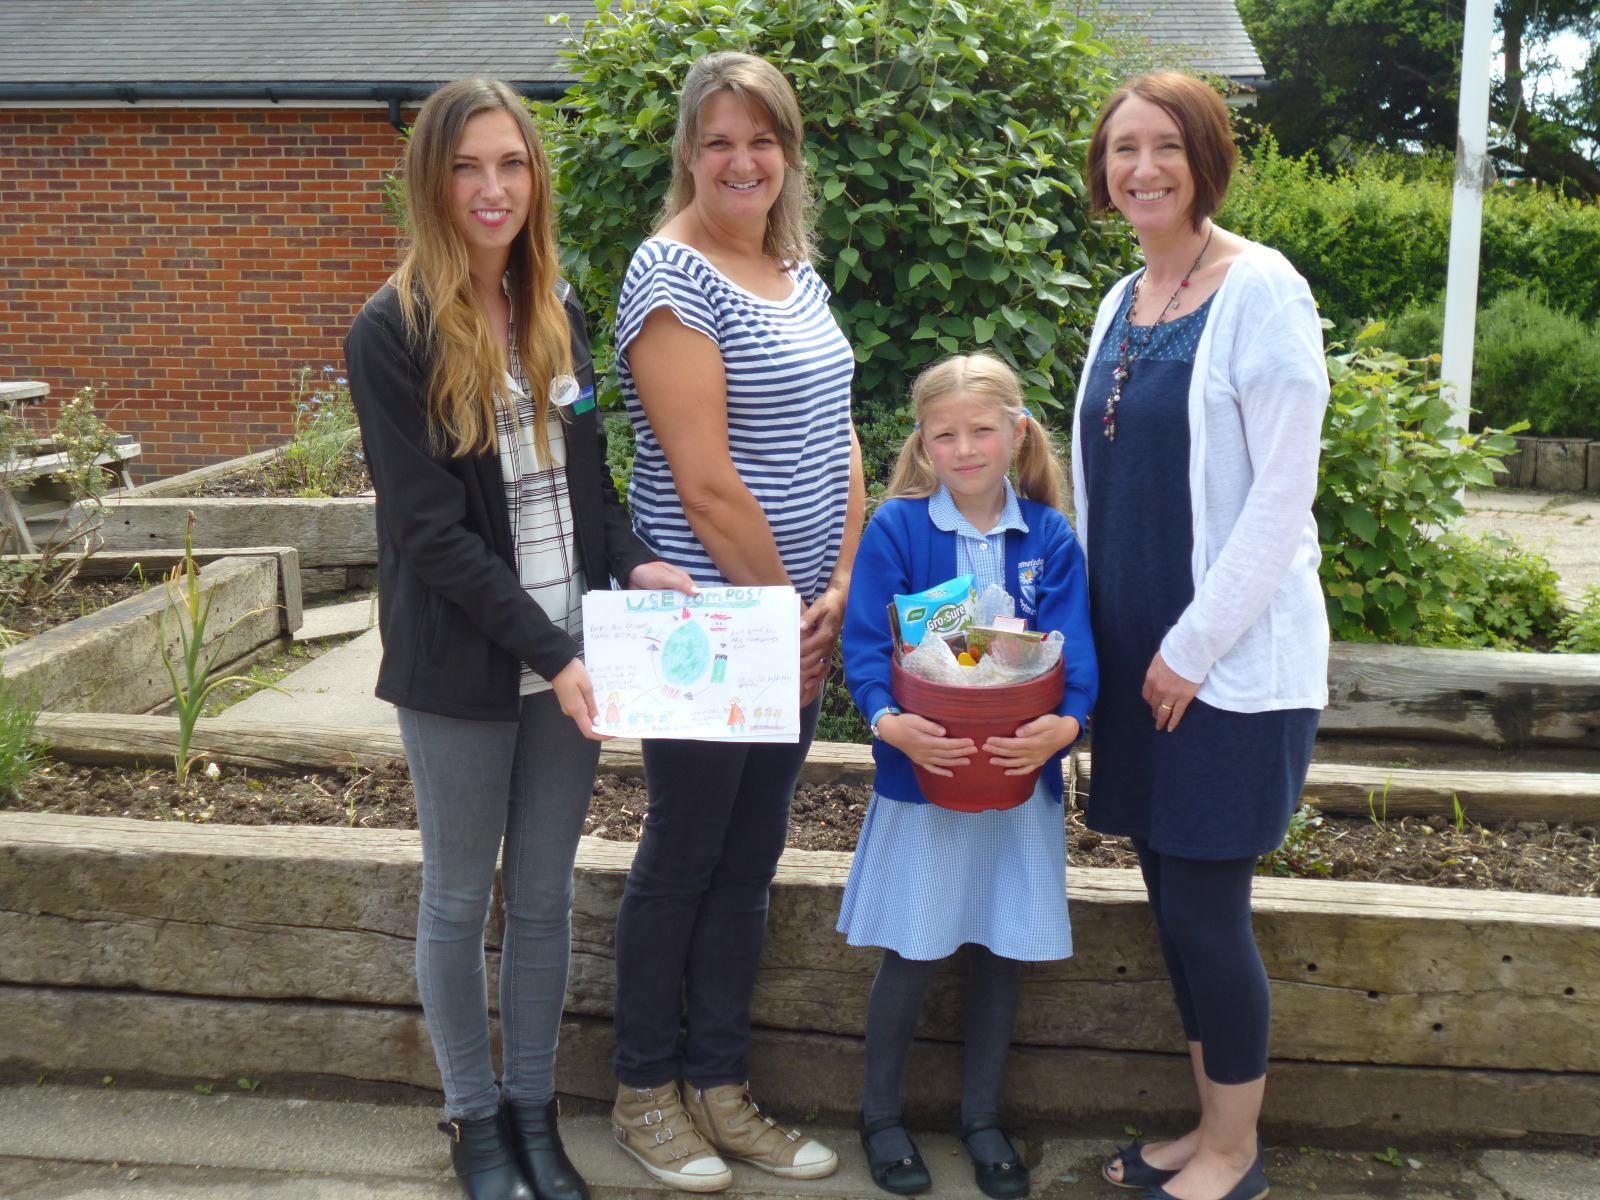 L-R Sophie Lindsay Ogg from WH, Mrs Carless, Bebe Duncan and Mrs Brownbill from Camelsdale Primary School